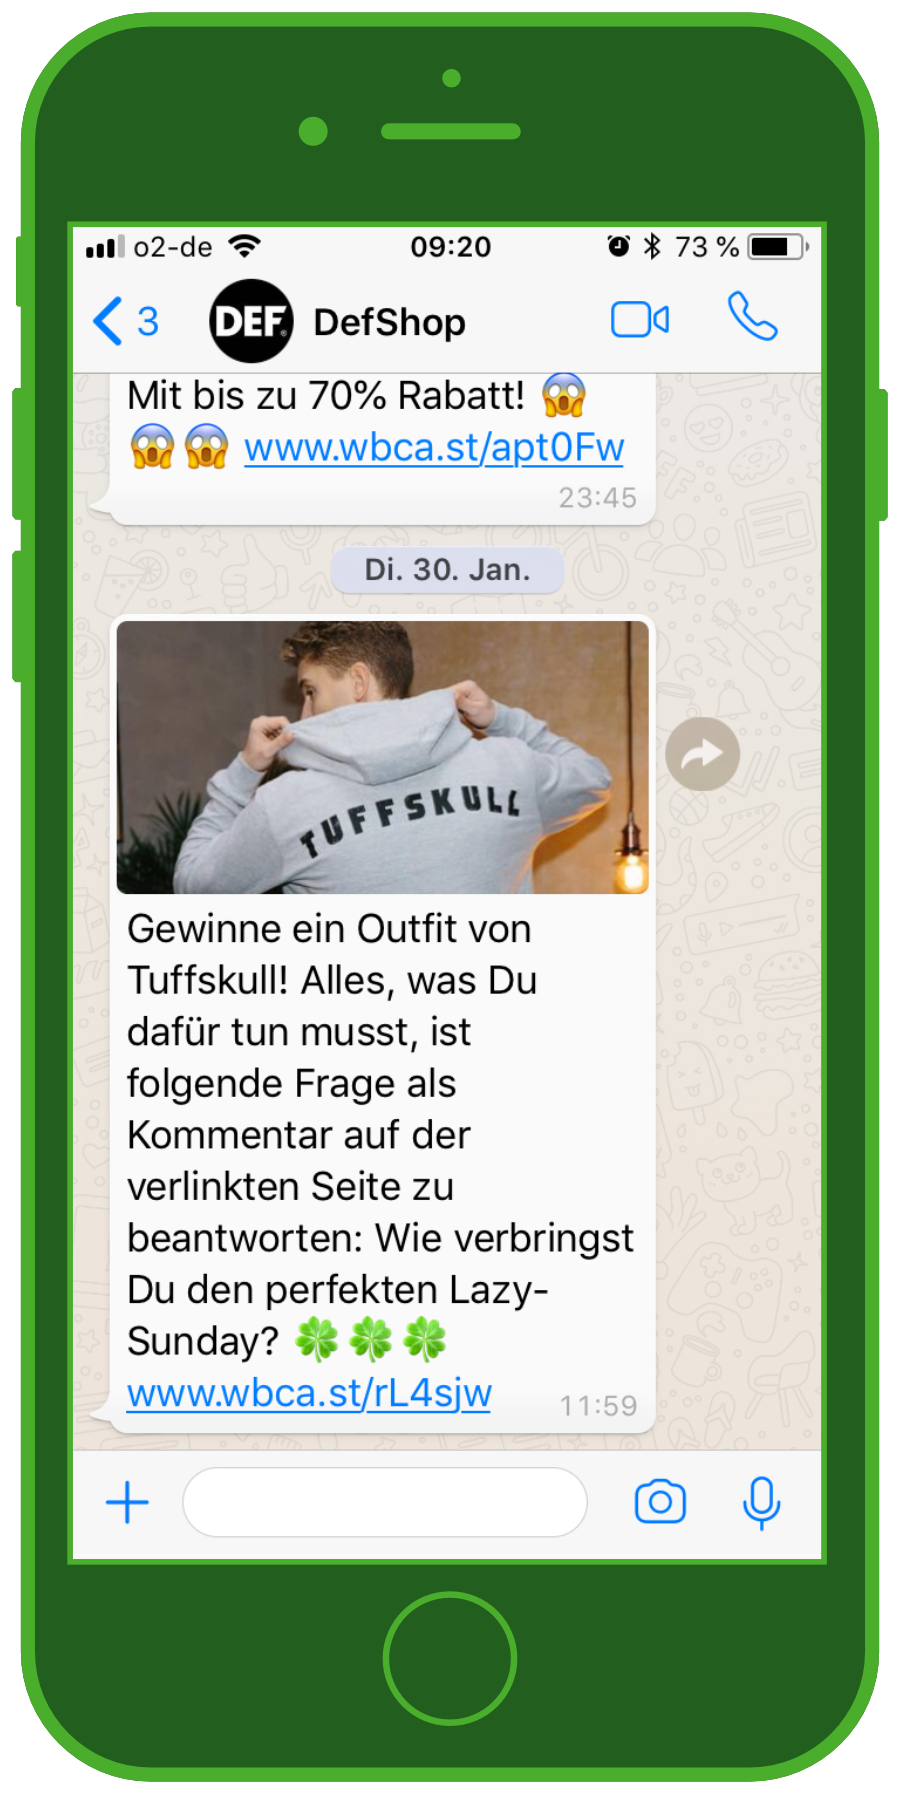 device-defshop-fashion-whatsapp-screenshot